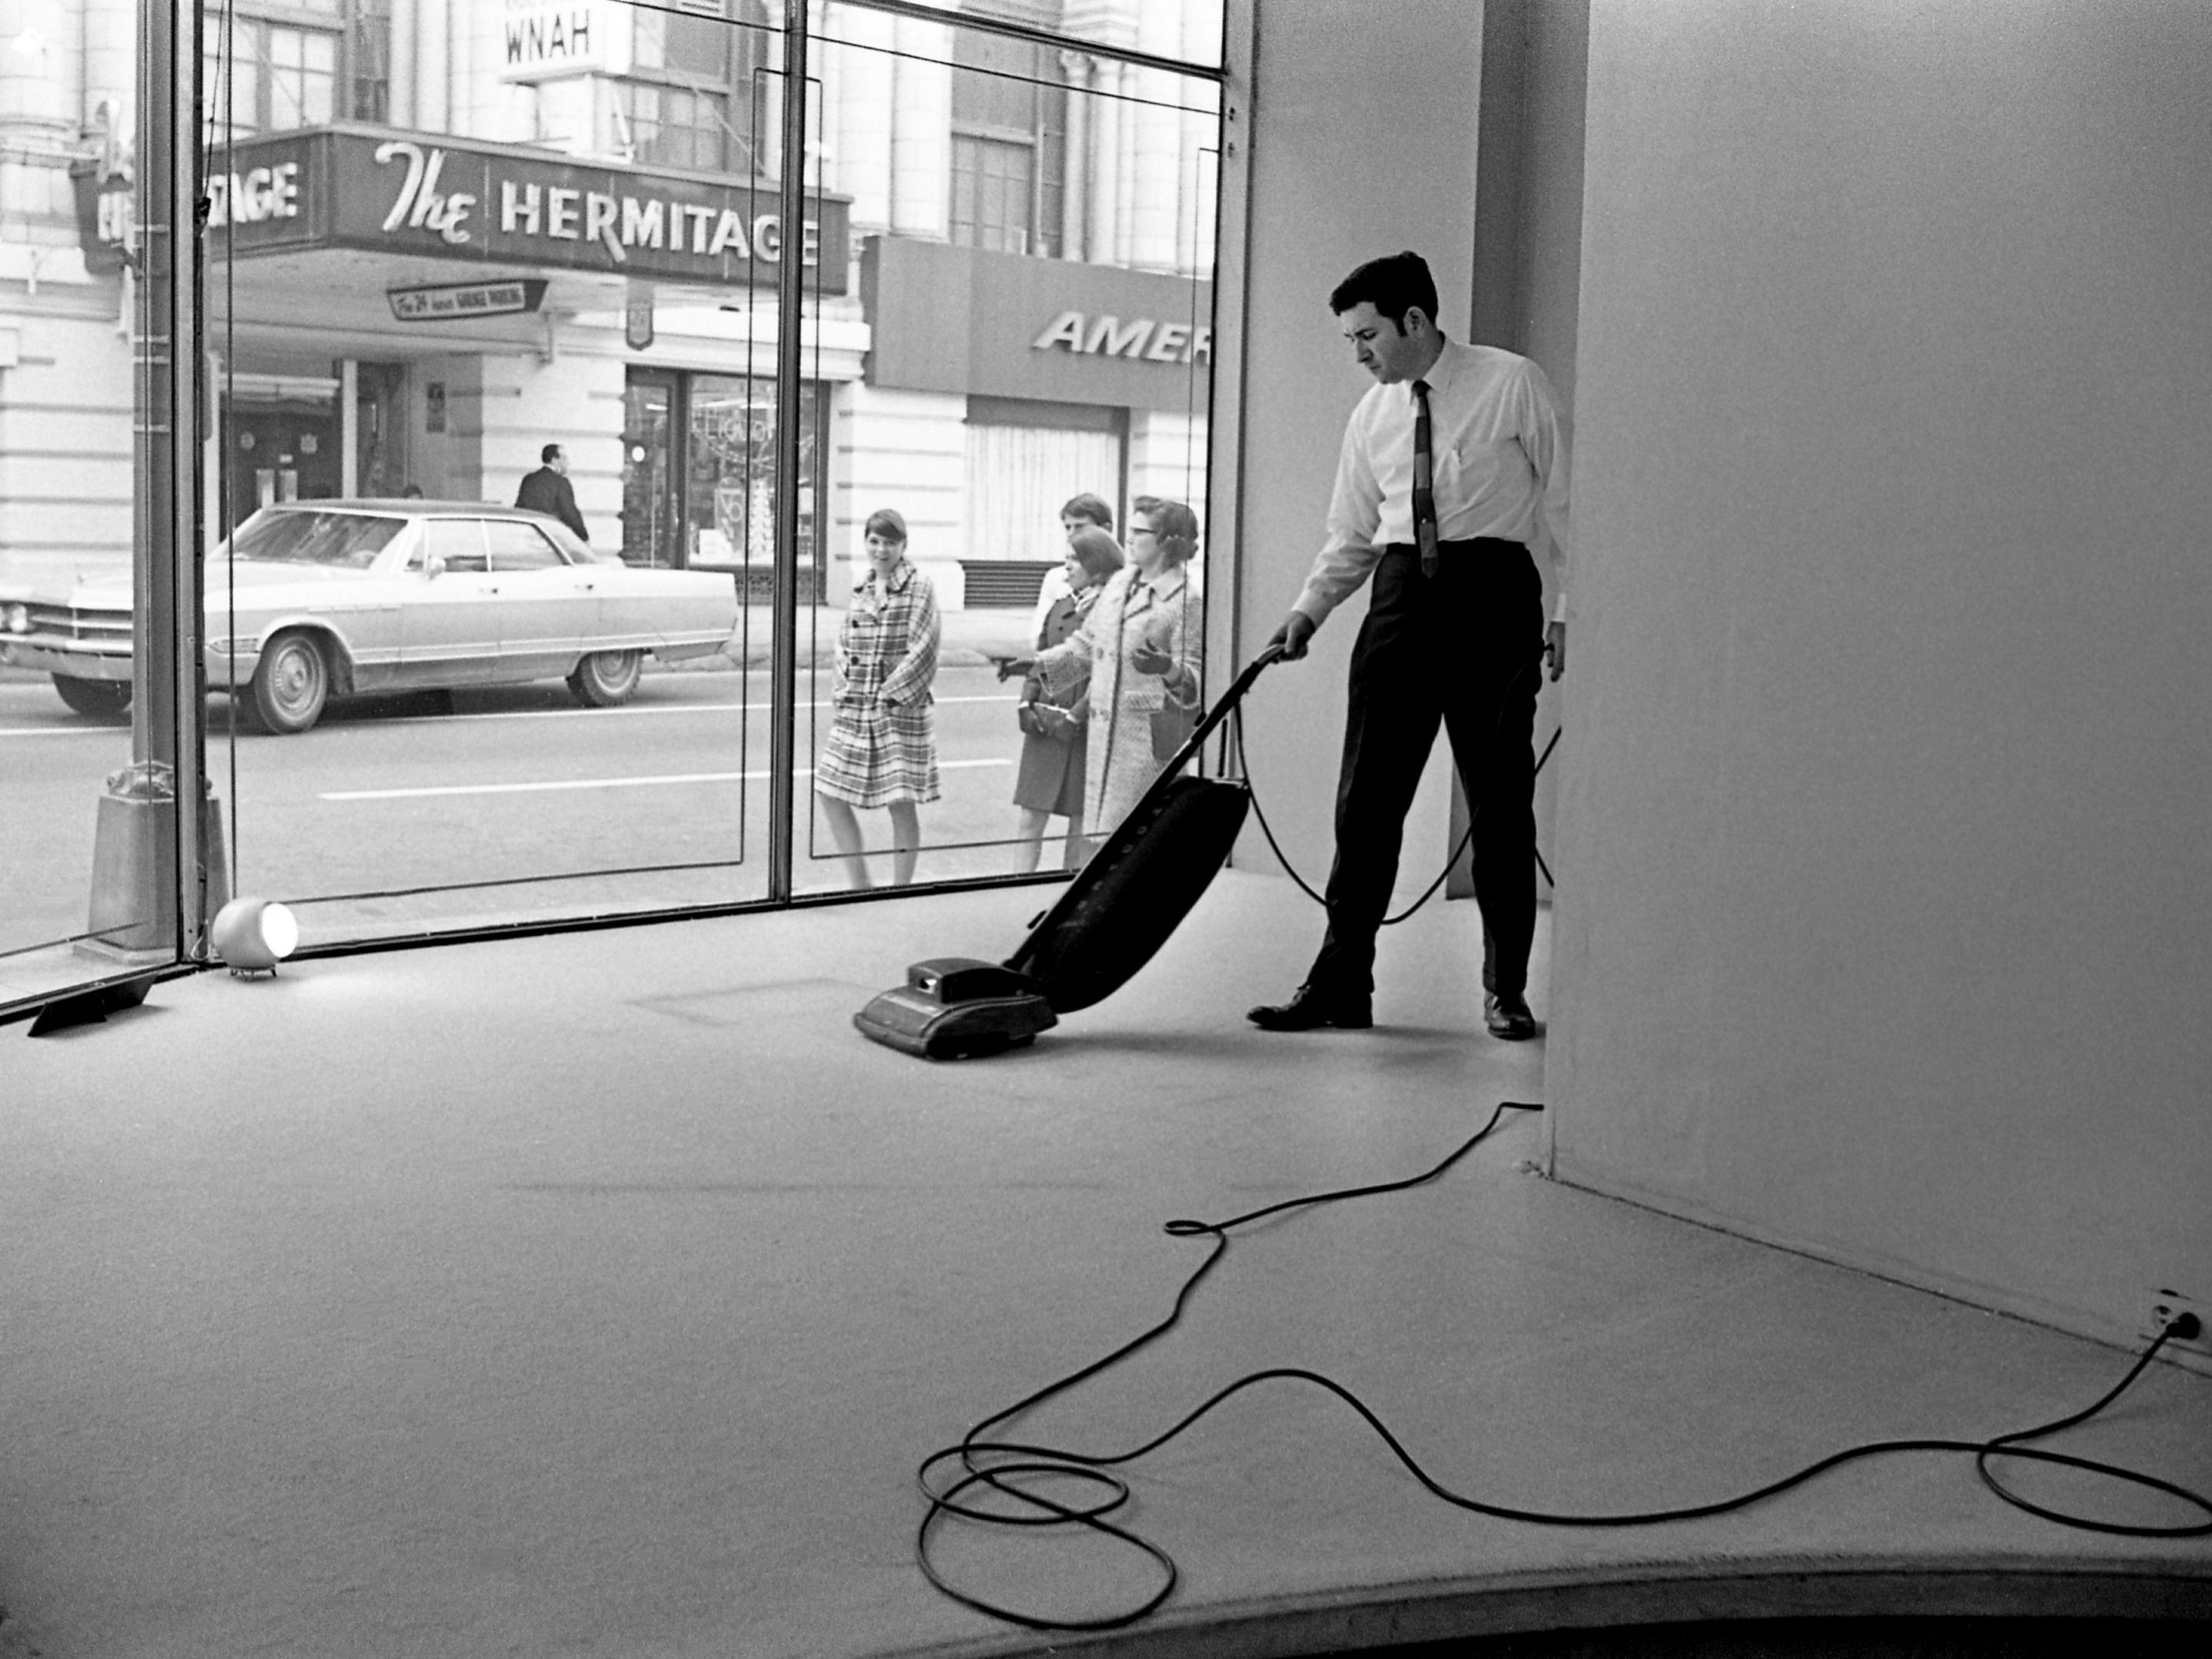 Don Brandes, salesman at Chayburke's on Sixth Avenue across from the Hermitage Hotel in downtown Nashville, begins the day after Christmas task of cleaning up Dec. 26, 1968.